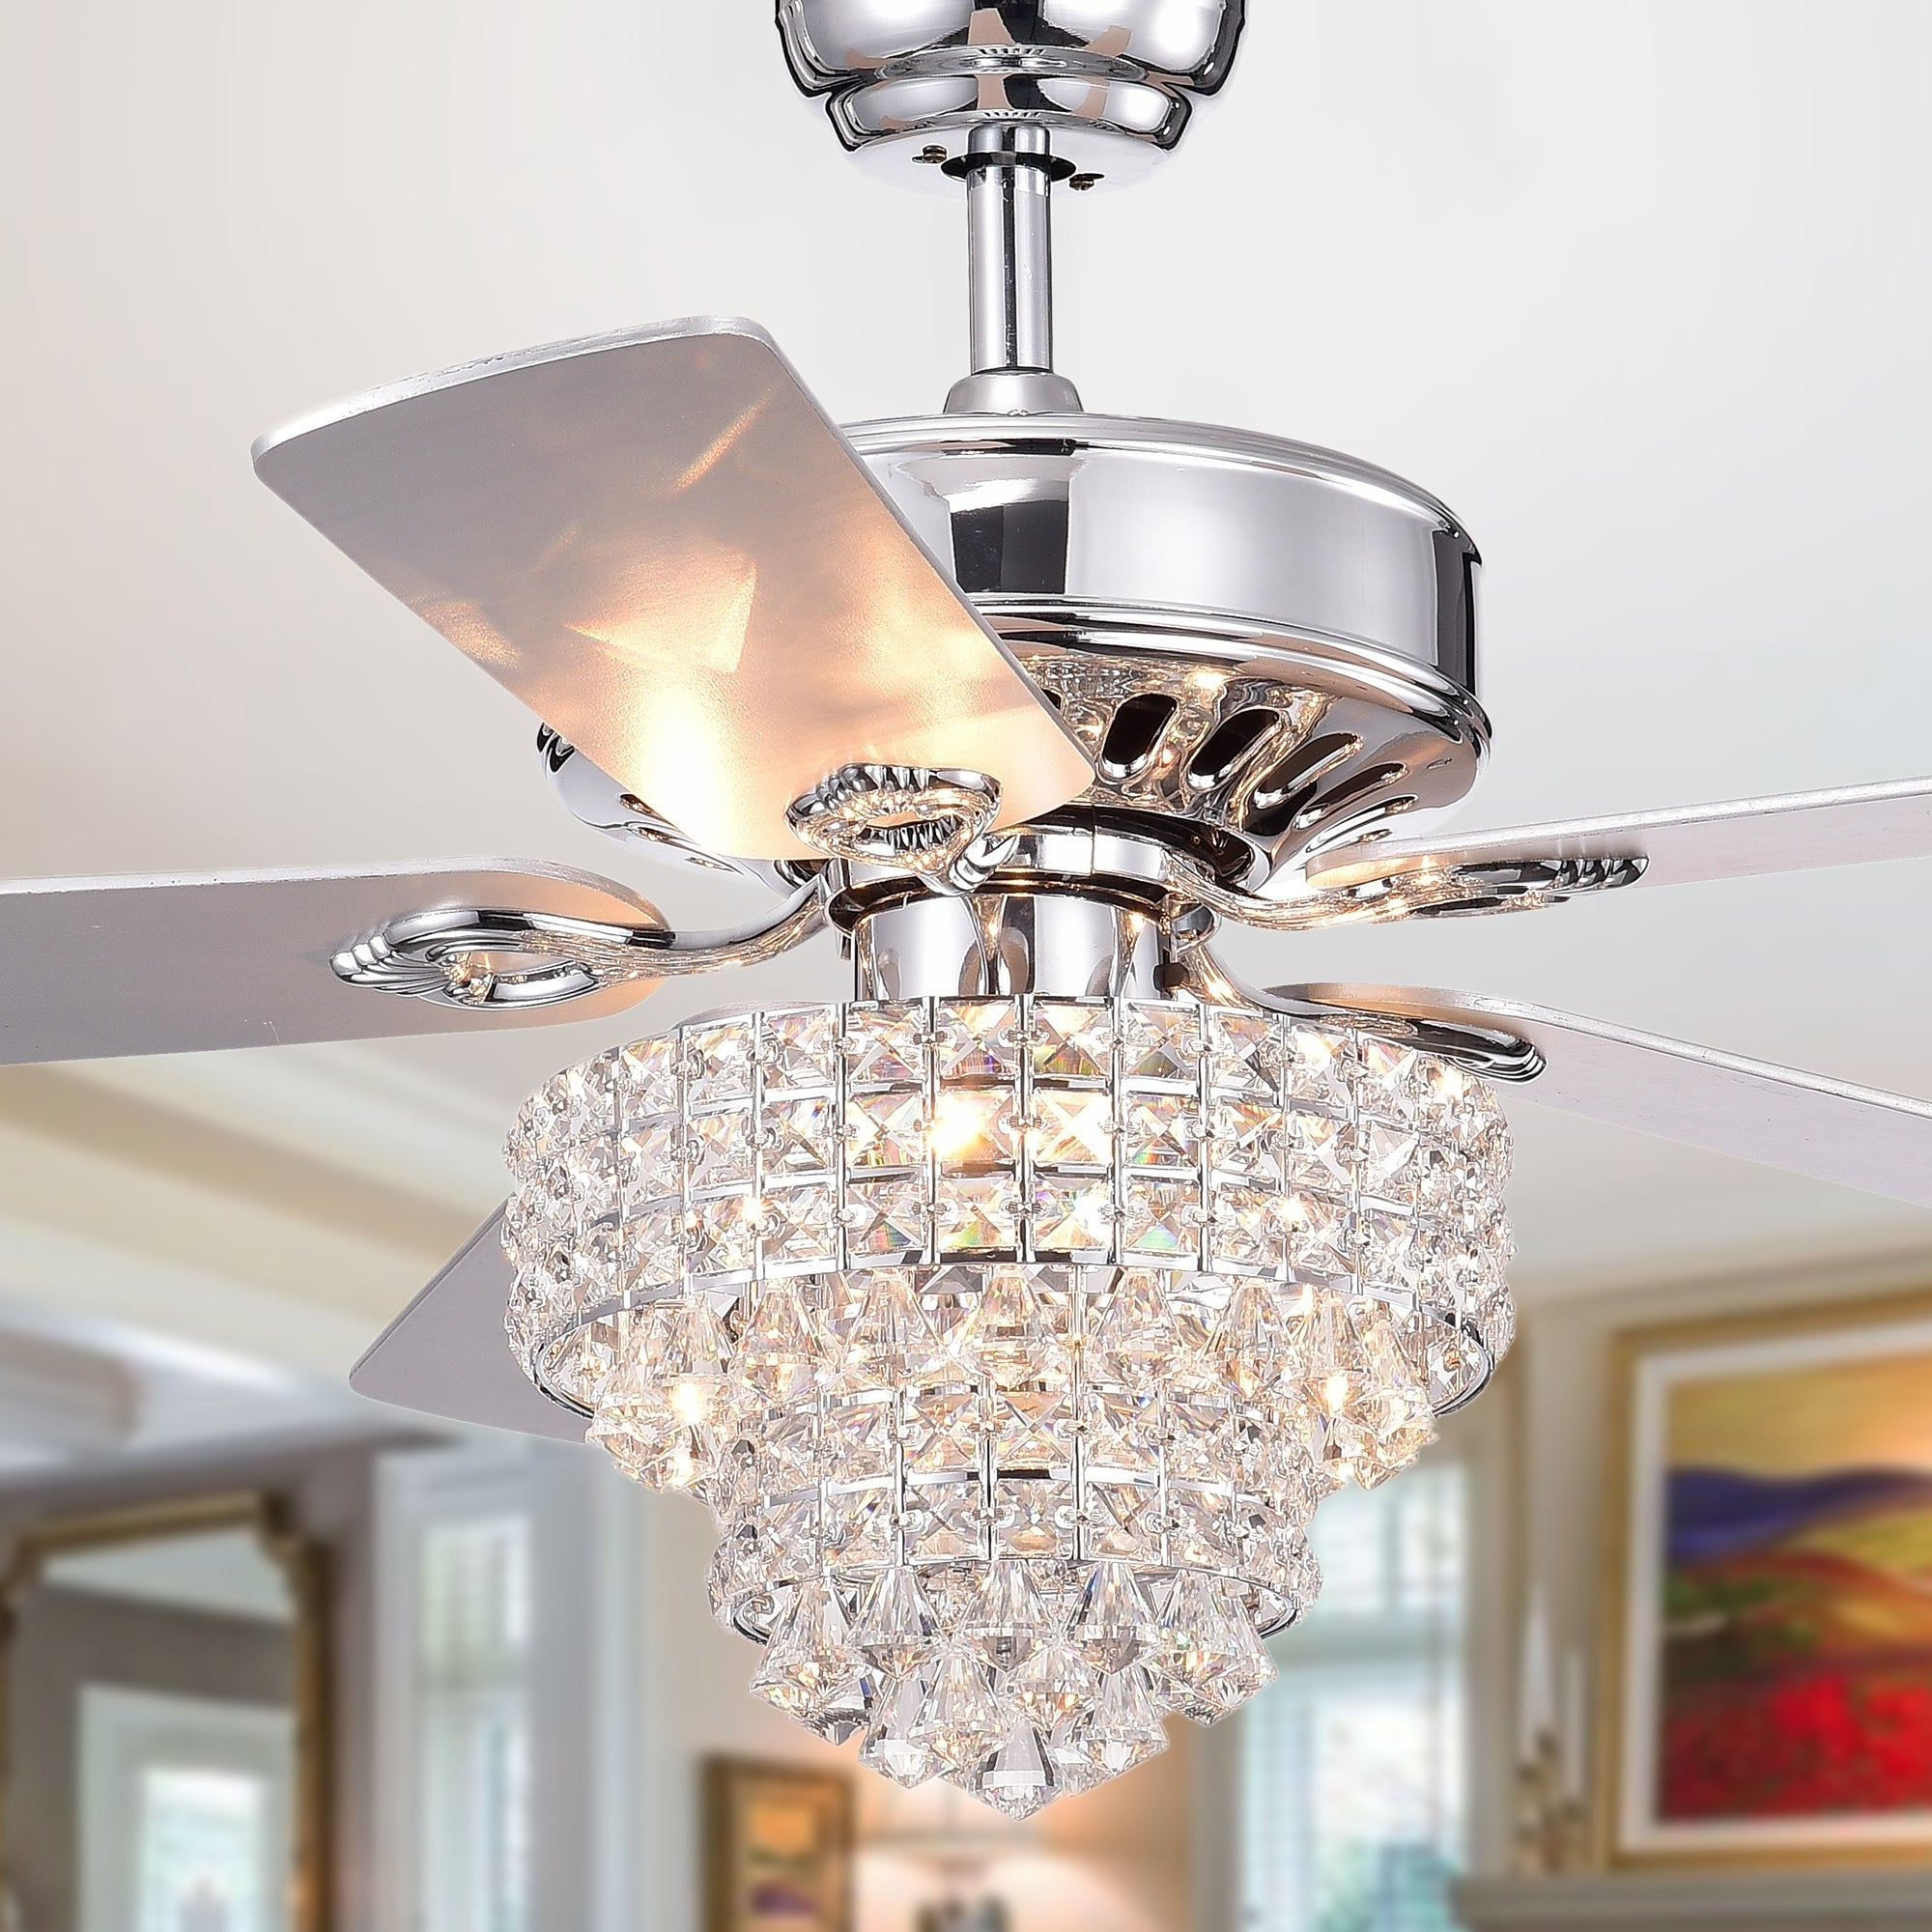 Well Known Lindsay 5 Blade Ceiling Fans Regarding Bryanya 5 Blade 52 Inch Chrome Lighted Ceiling Fans With Crystal Shade (Optional Remote) (View 10 of 20)